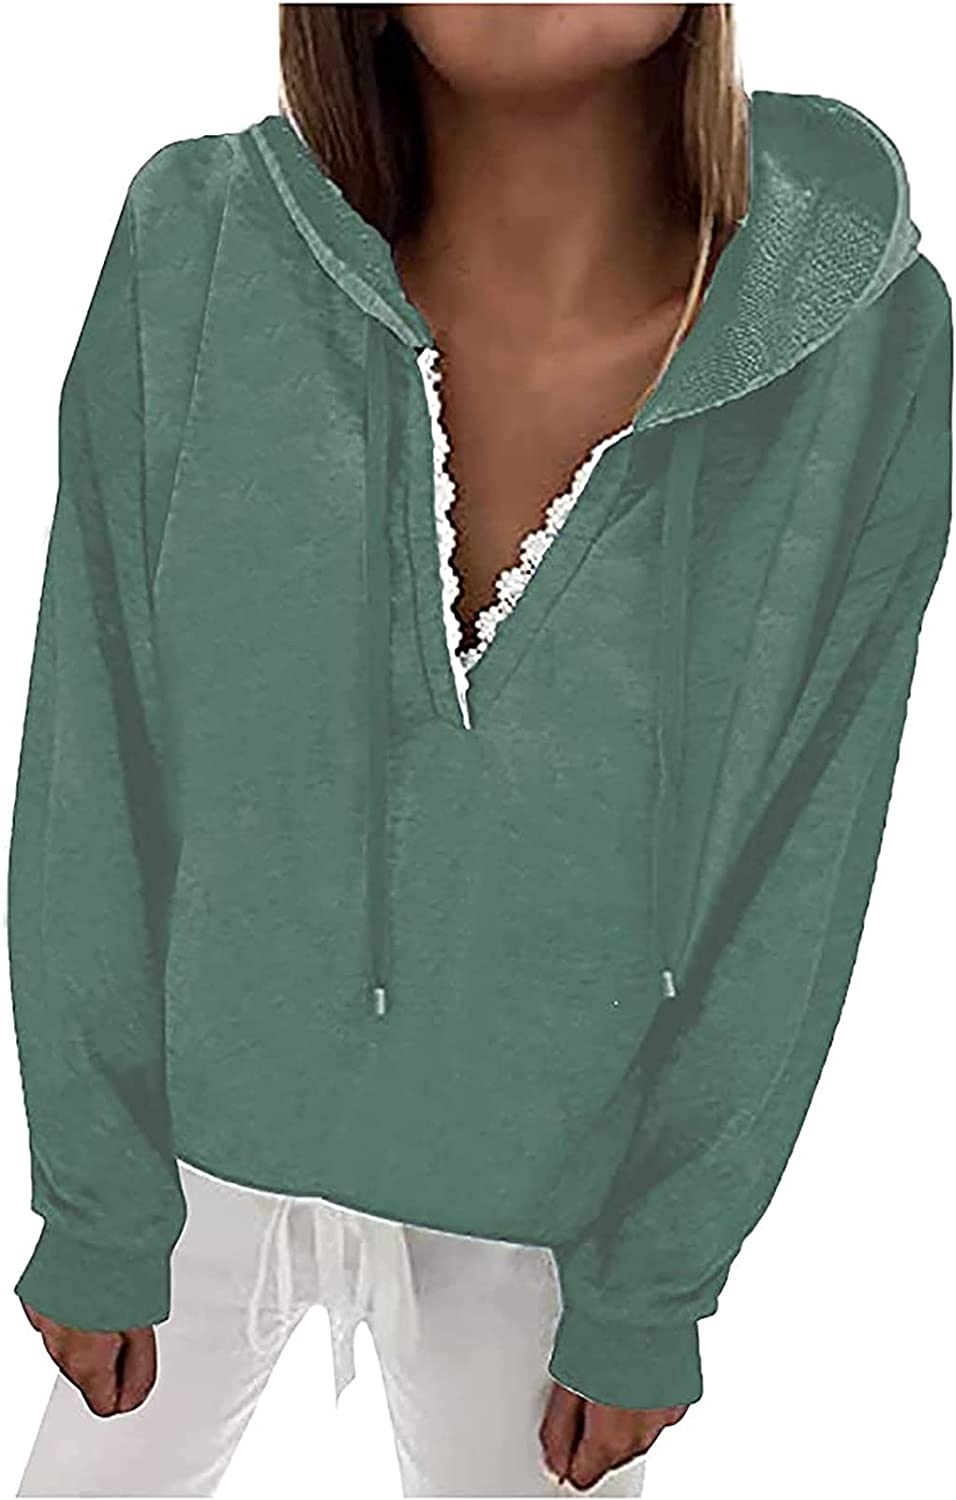 Women's Long Sleeve Hooded Sweatshirt Casual Solid Color V-Neck Hoodies Loose Fit Drawstring Pullover Fall Short Tops